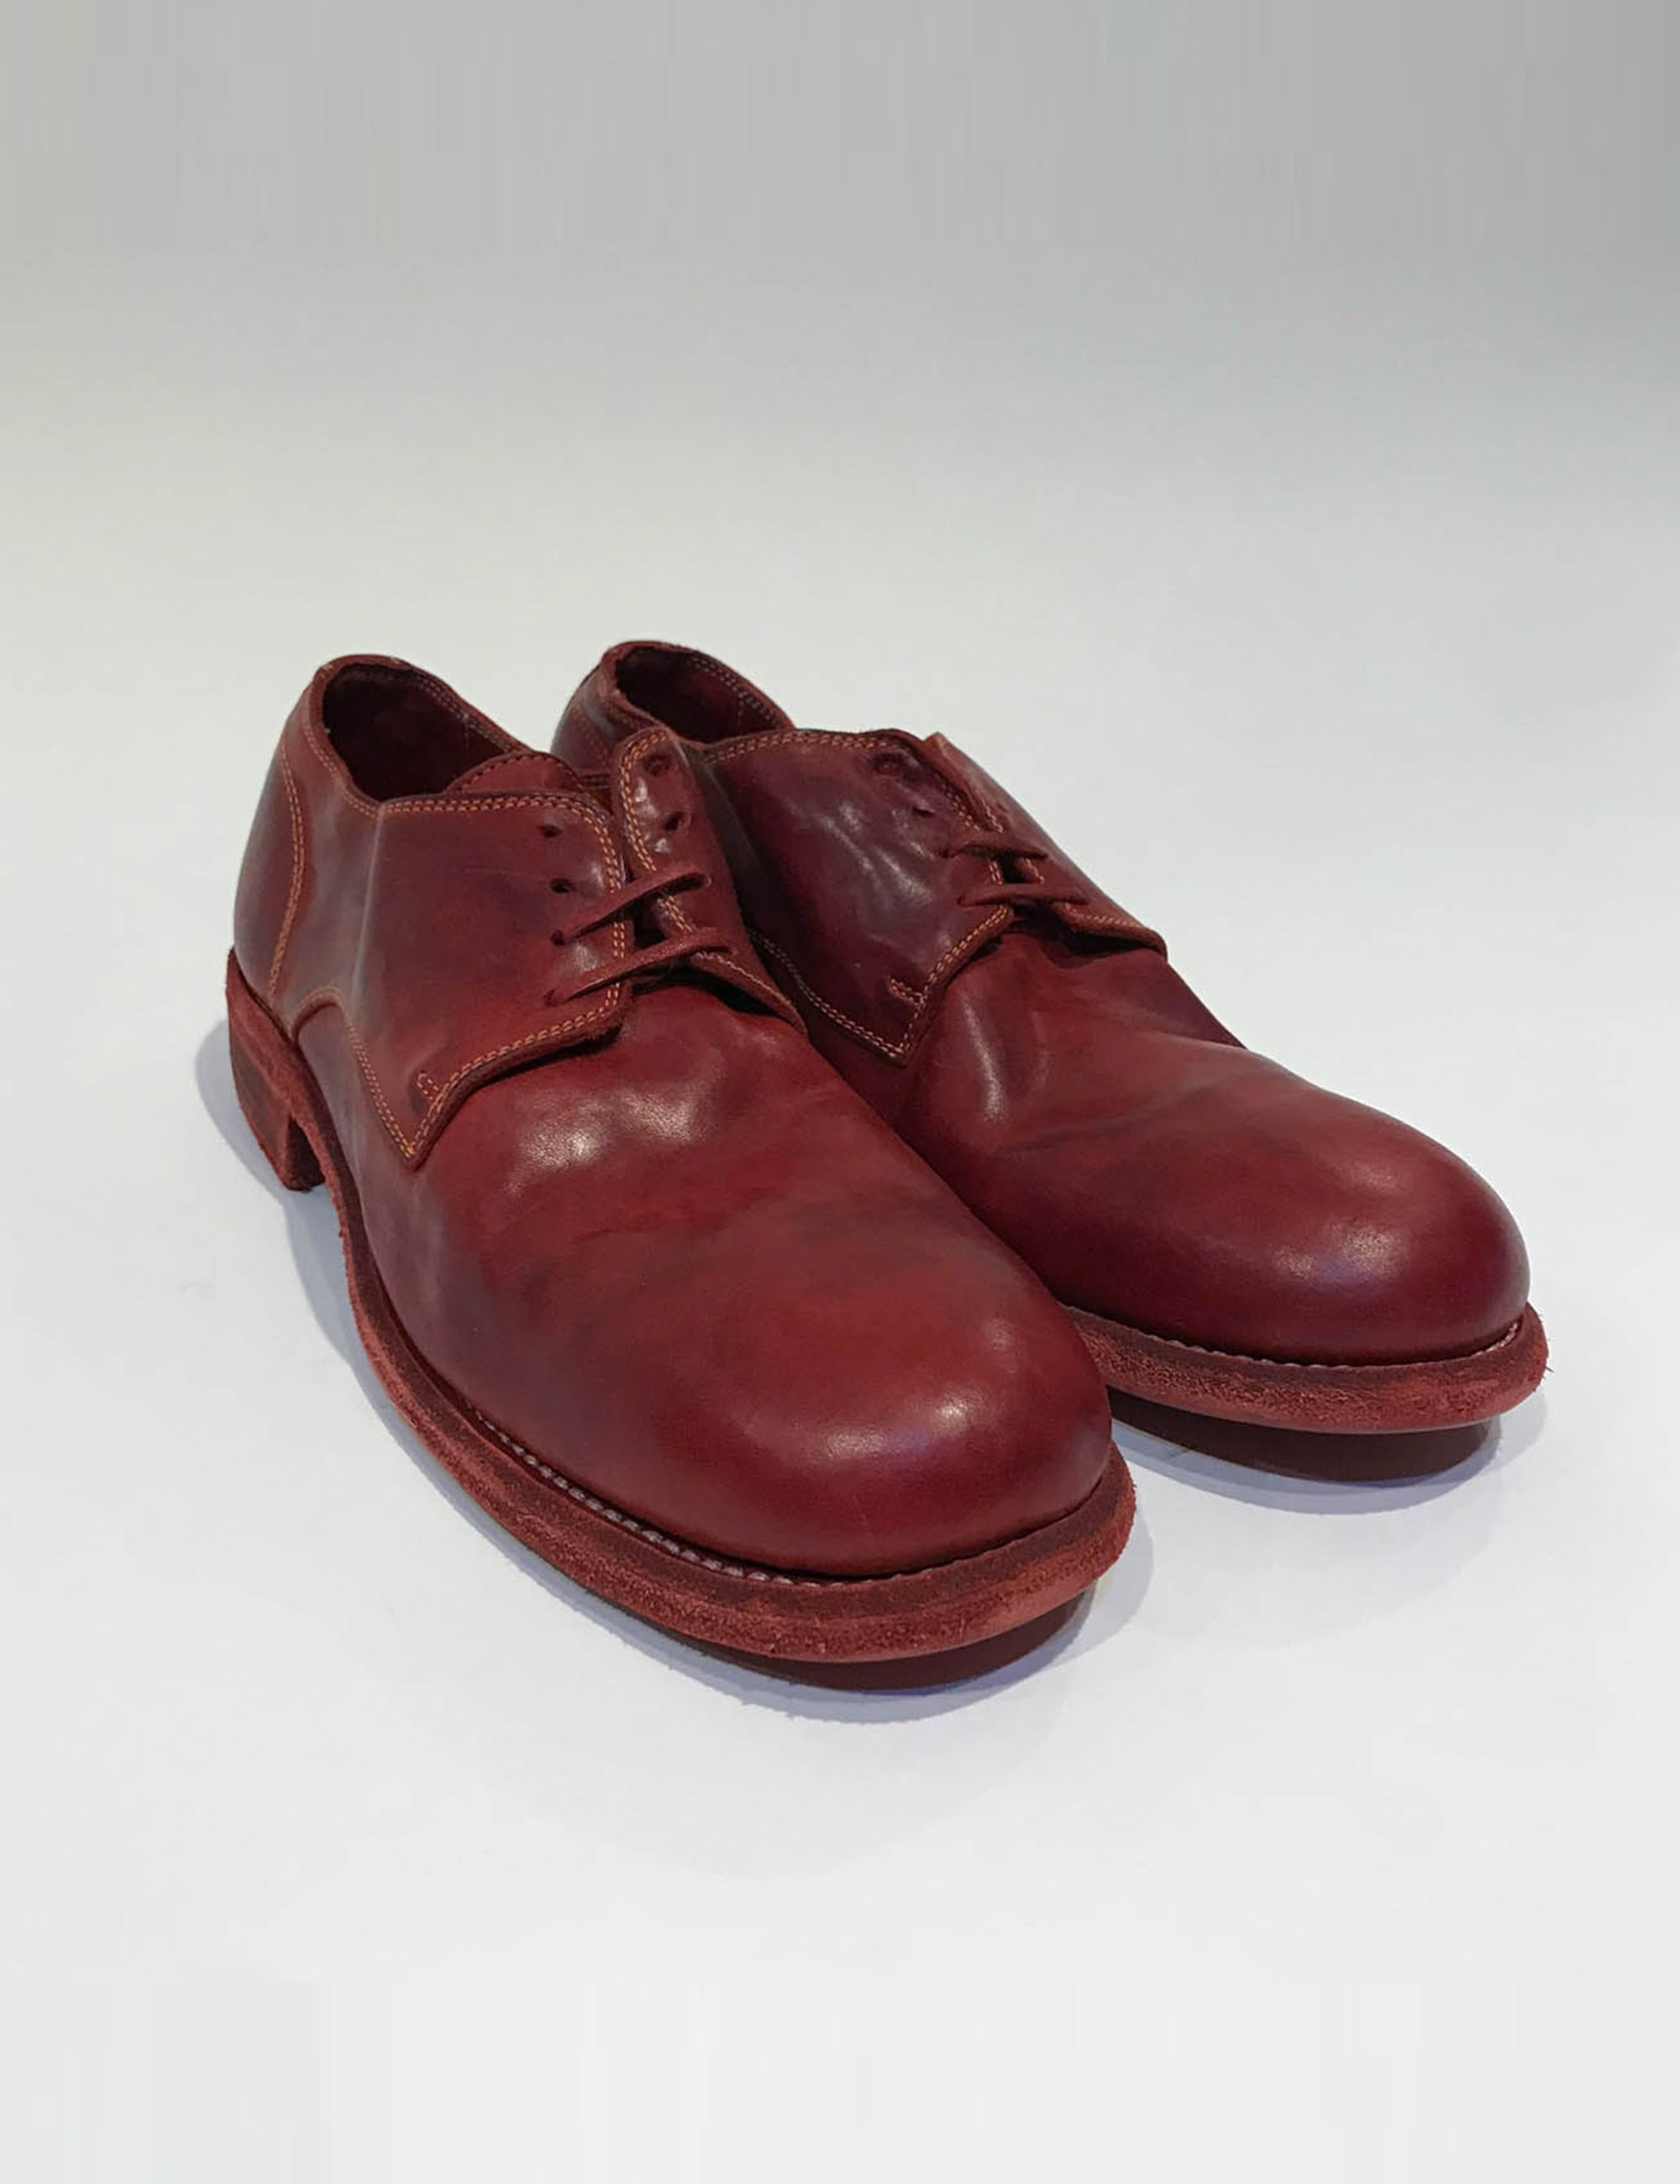 992 CLASSIC DERBY, SOLE LEATHER_RED